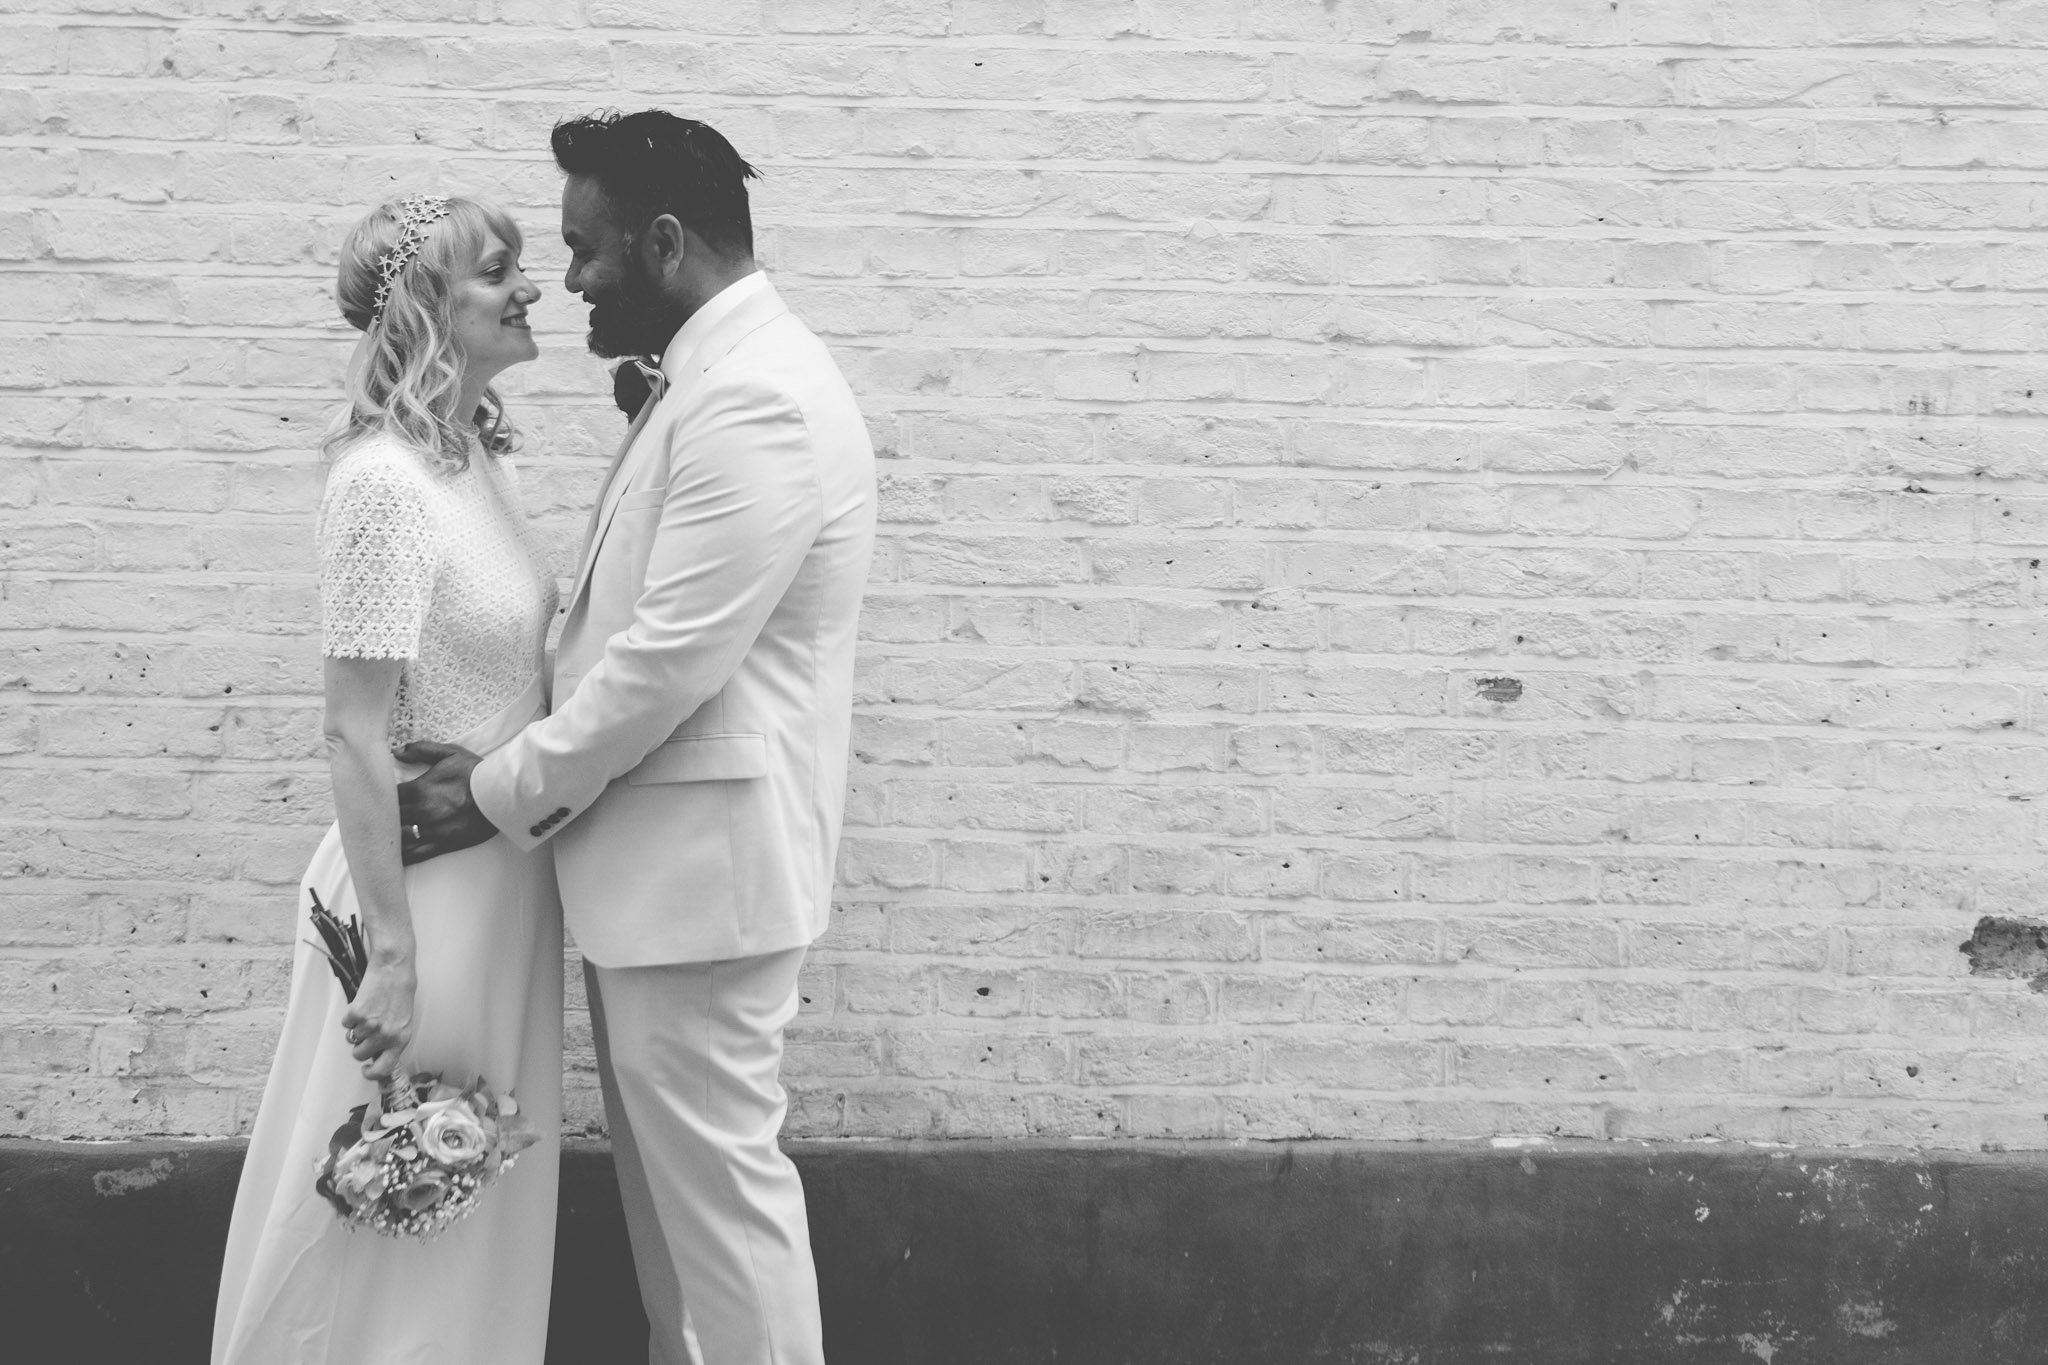 Creative portrait of a bride & groom in front of a brick wall in London. Photography by thatthingyoupluck.